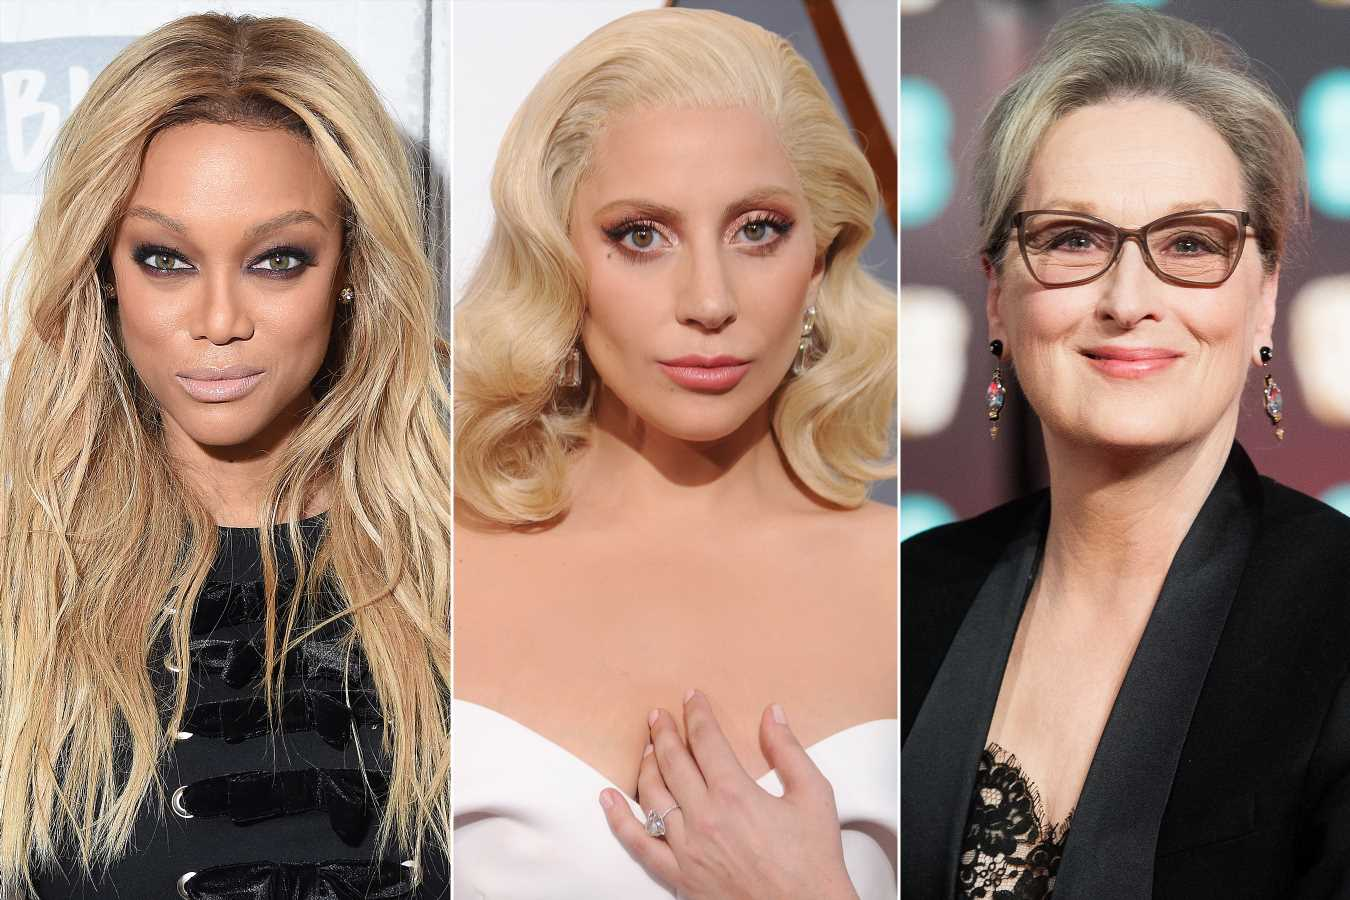 Tyra Banks Wants to Make a Coyote Ugly Sequel with Lady Gaga, Selena Gomez and Meryl Streep